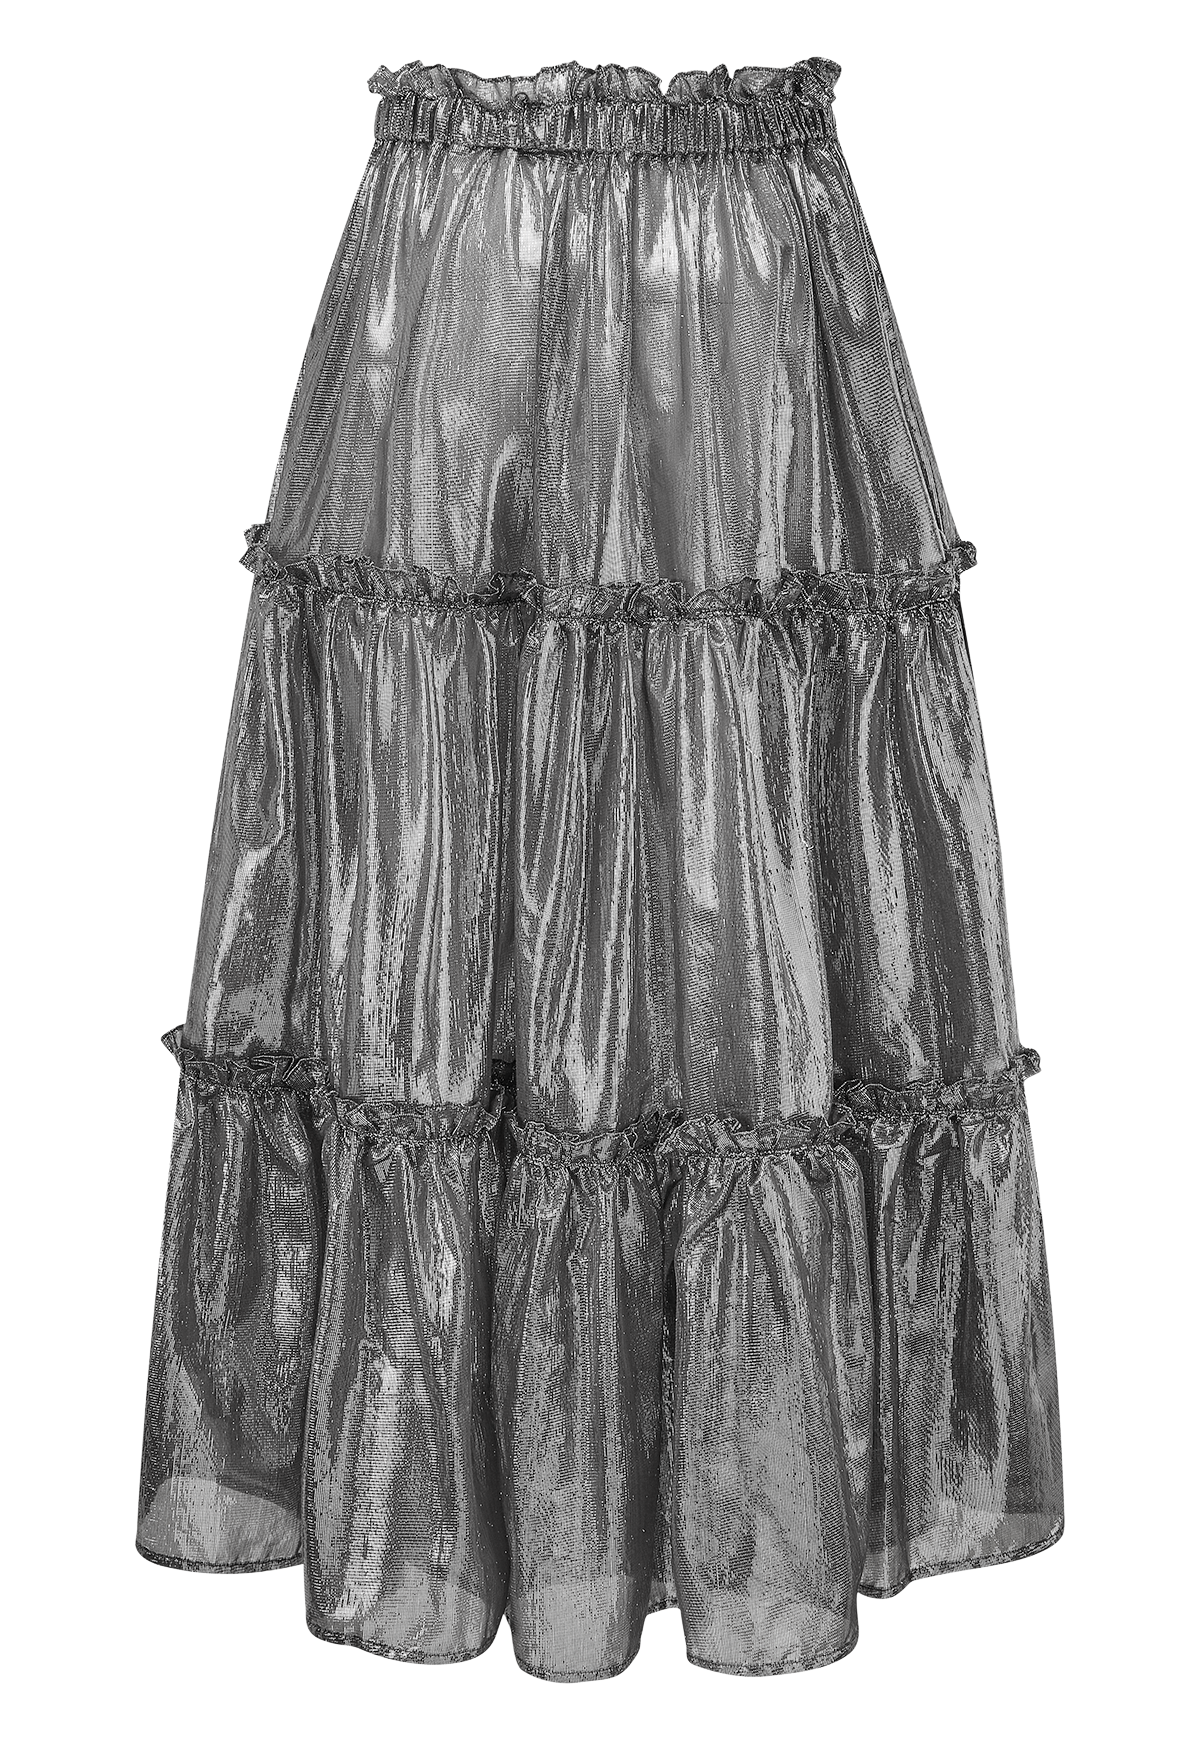 BLACK METALLIC RUFFLE PEASANT SKIRT